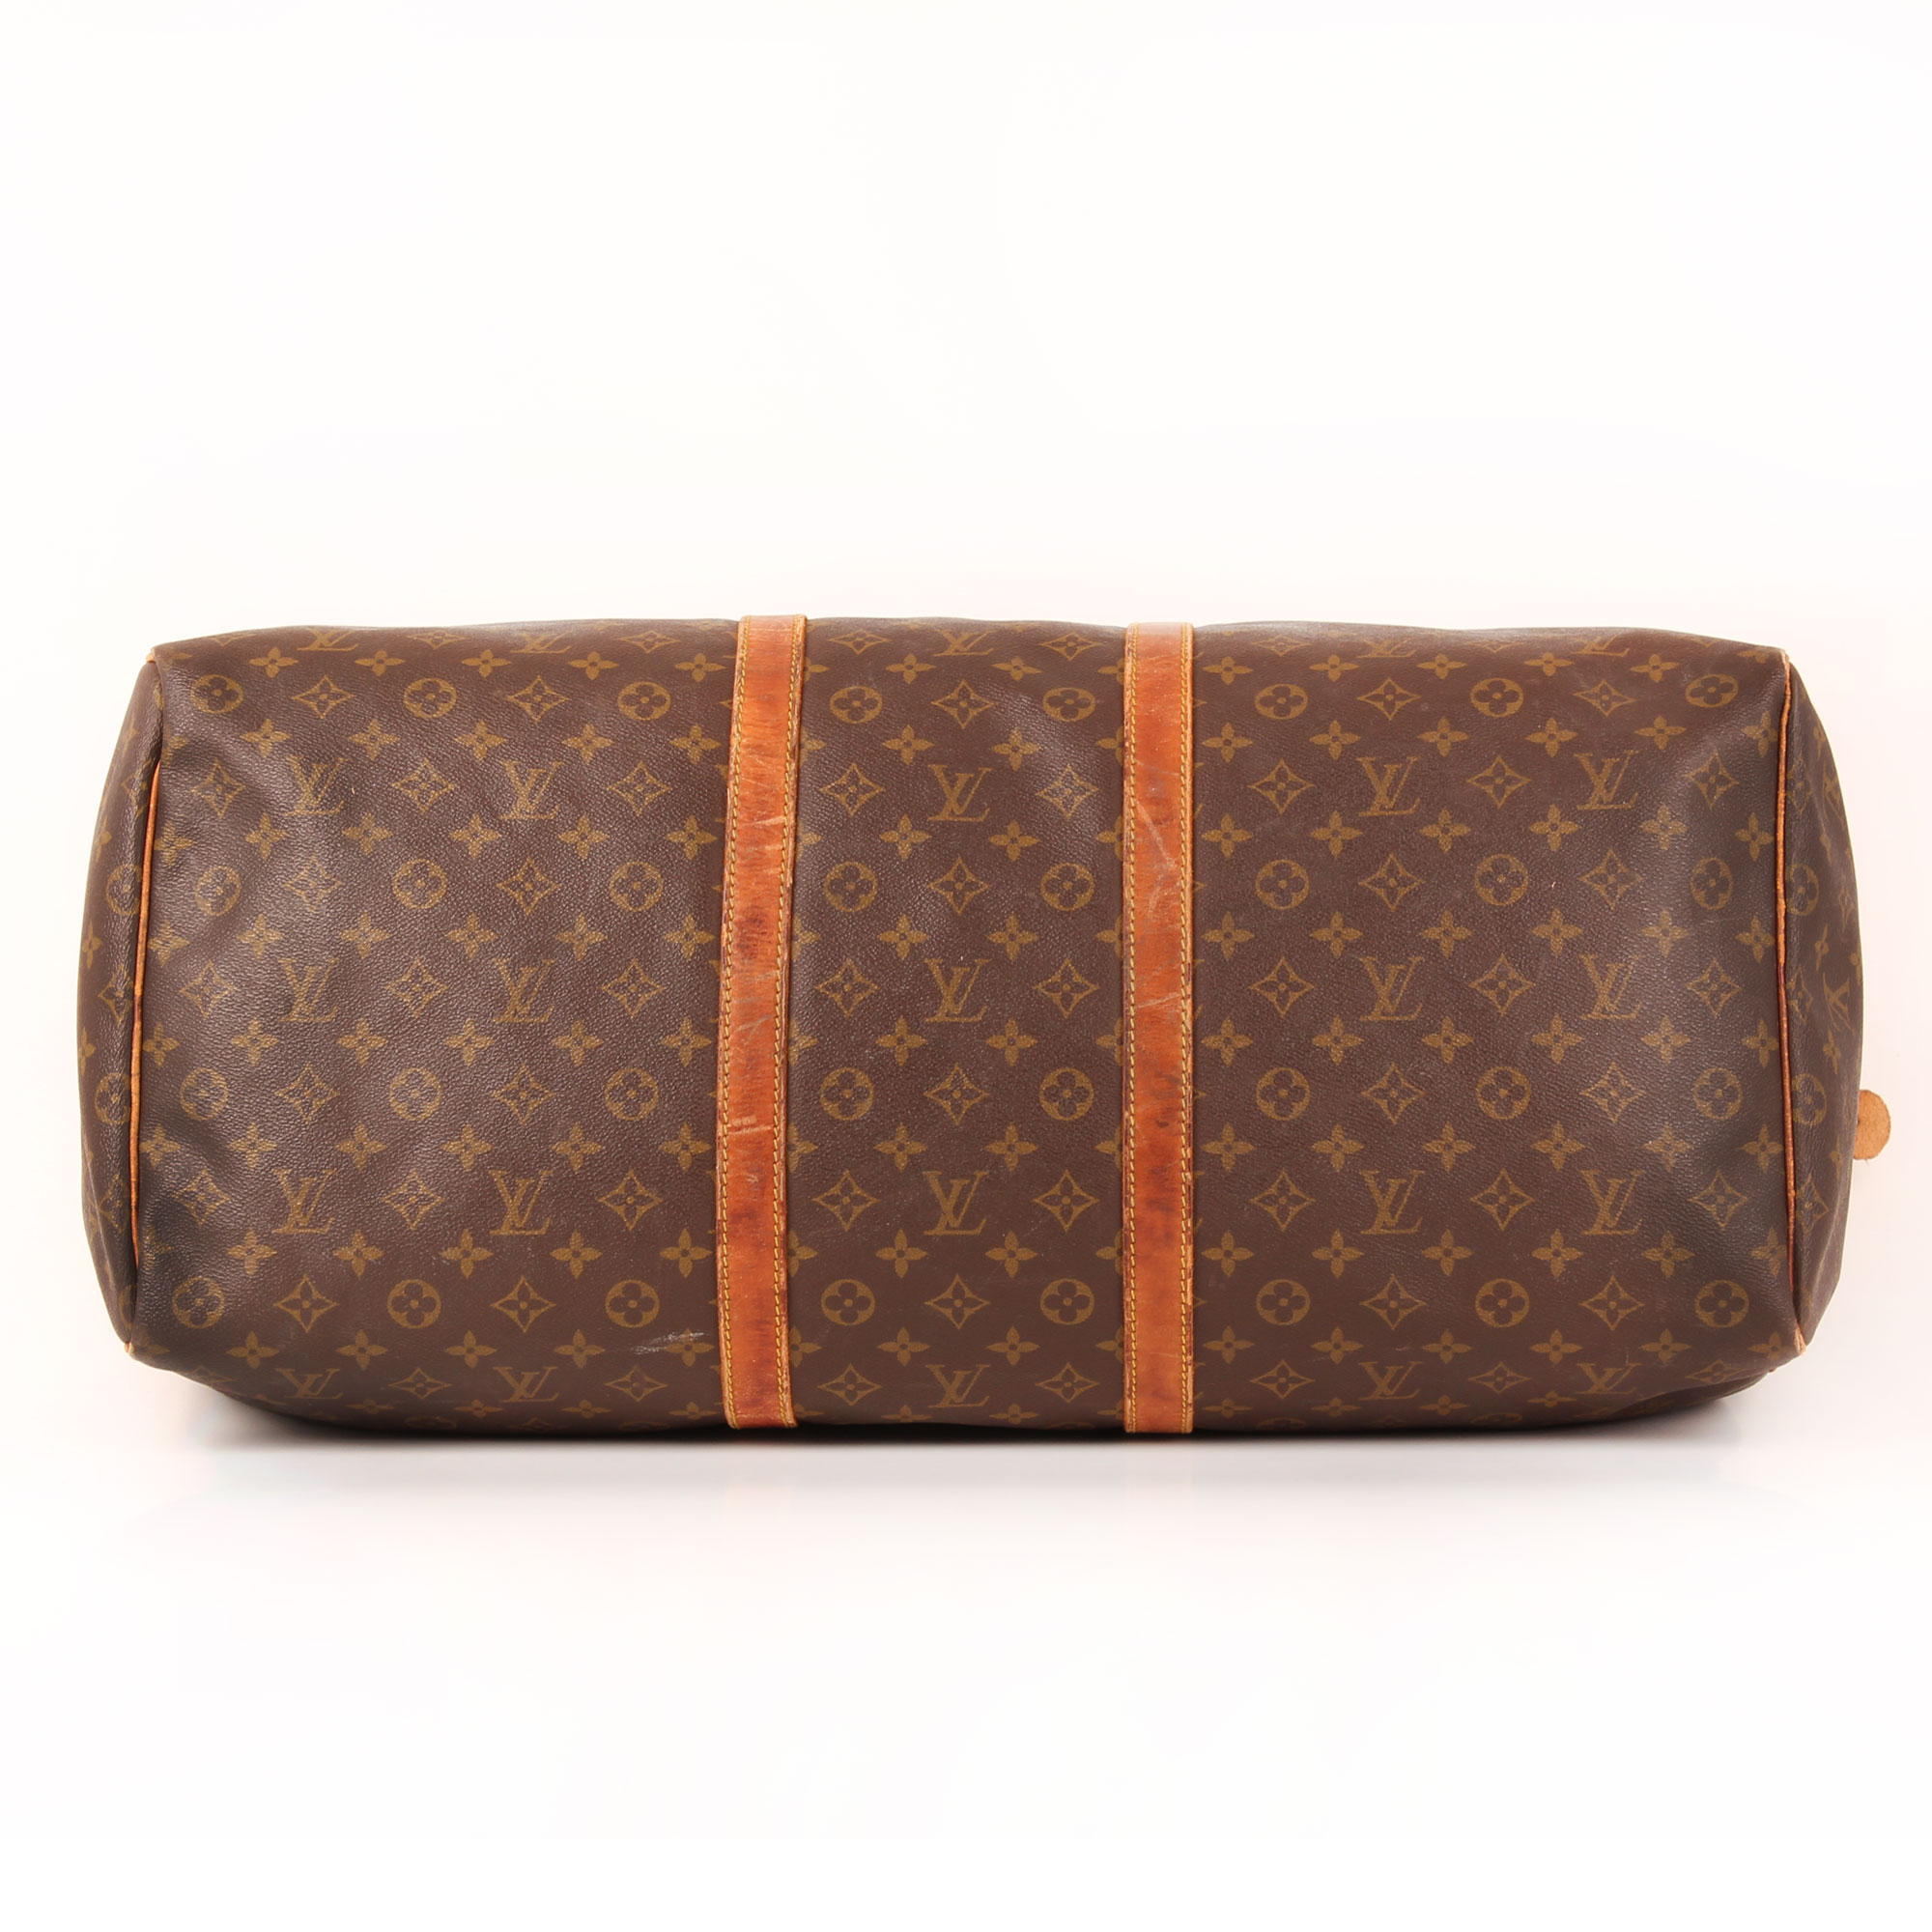 0724f2441 Imagen de la base de la bolsa louis vuitton keepall monogram 60